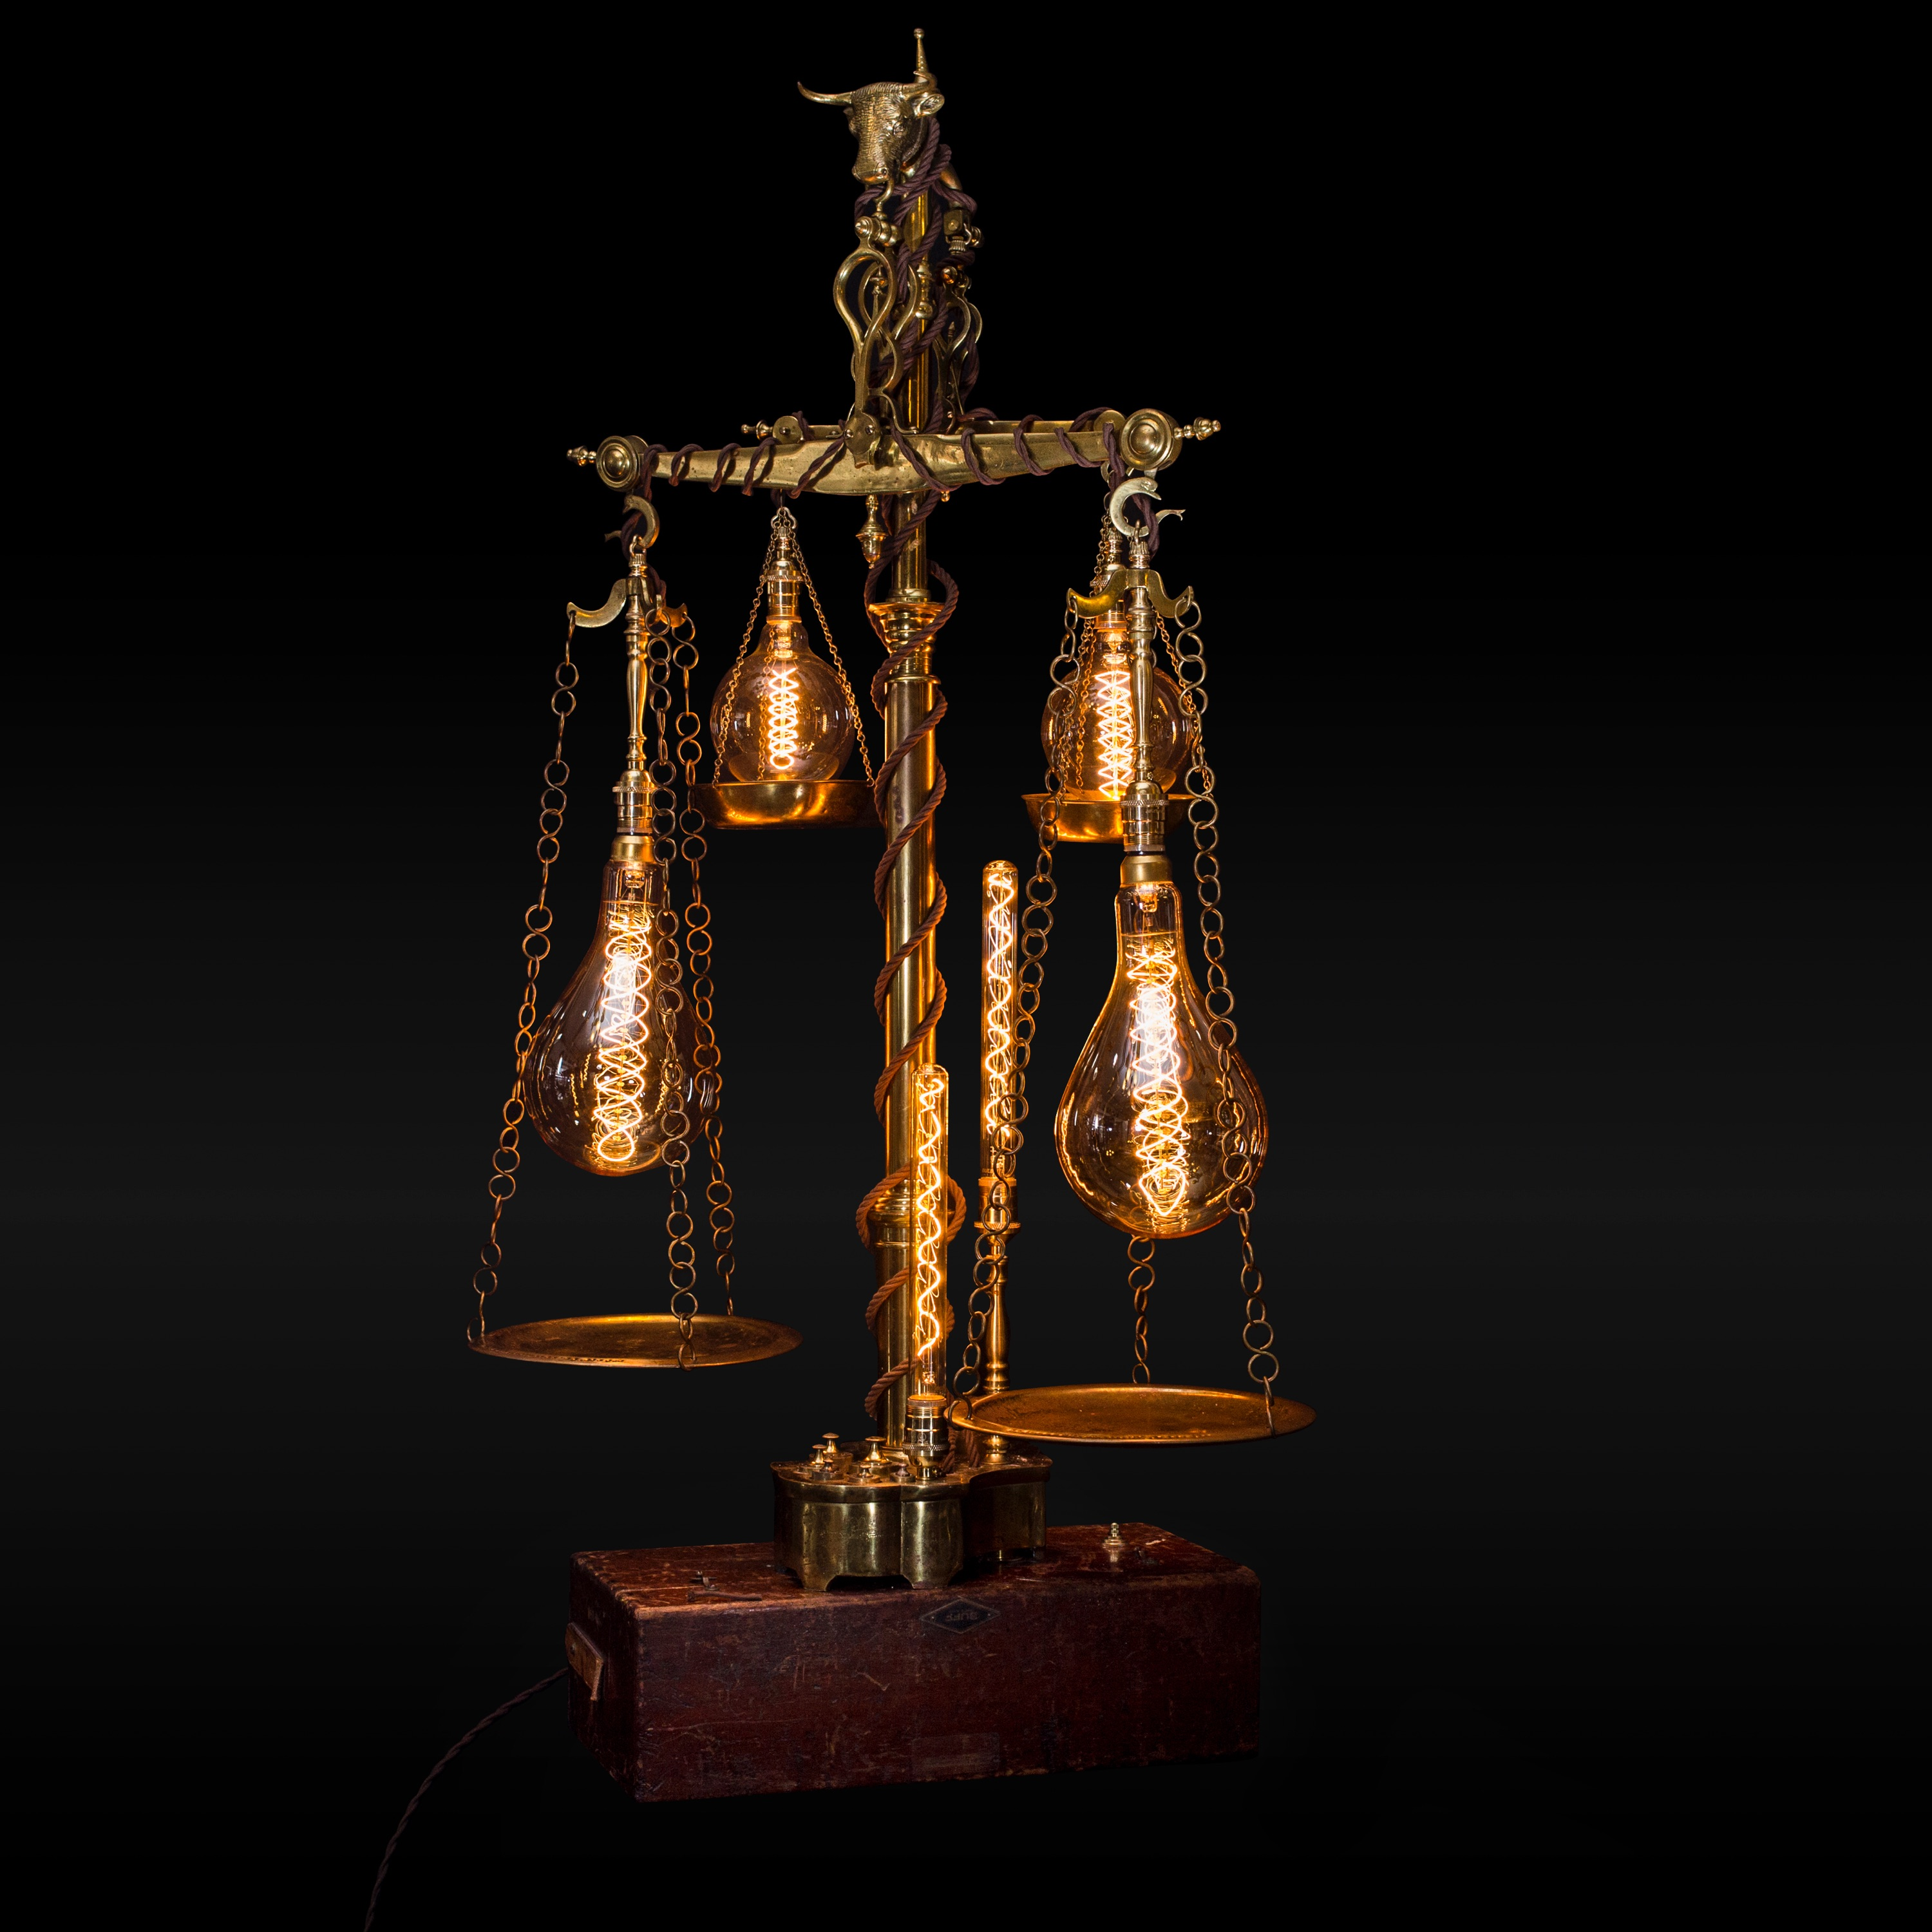 Art Lamp by Artifacts by Nomad